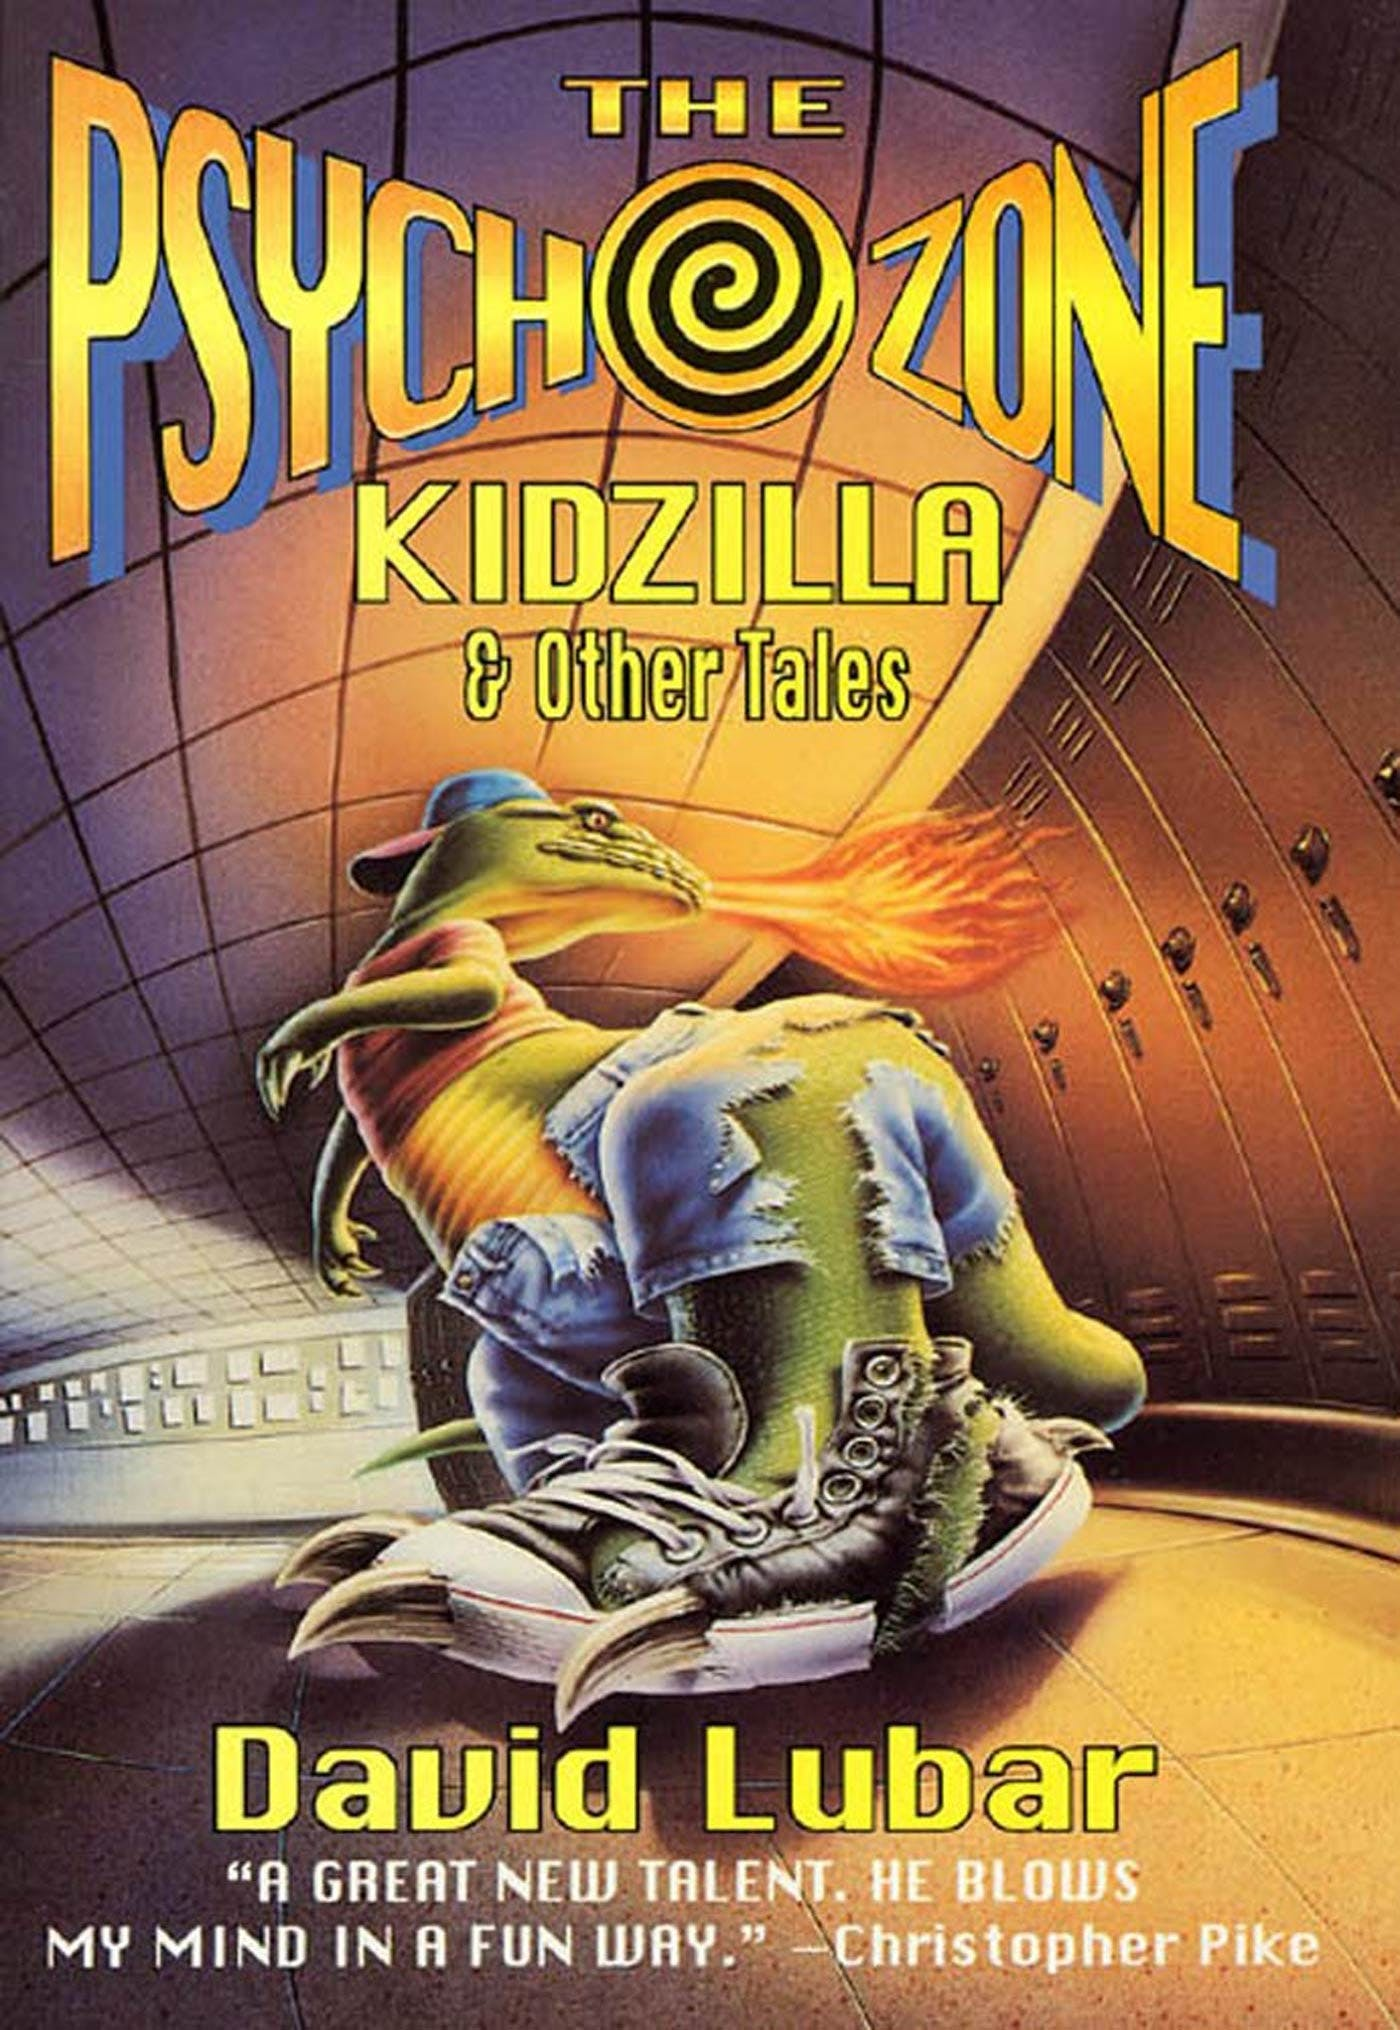 Image of The Psychozone: Kidzilla and Other Tales